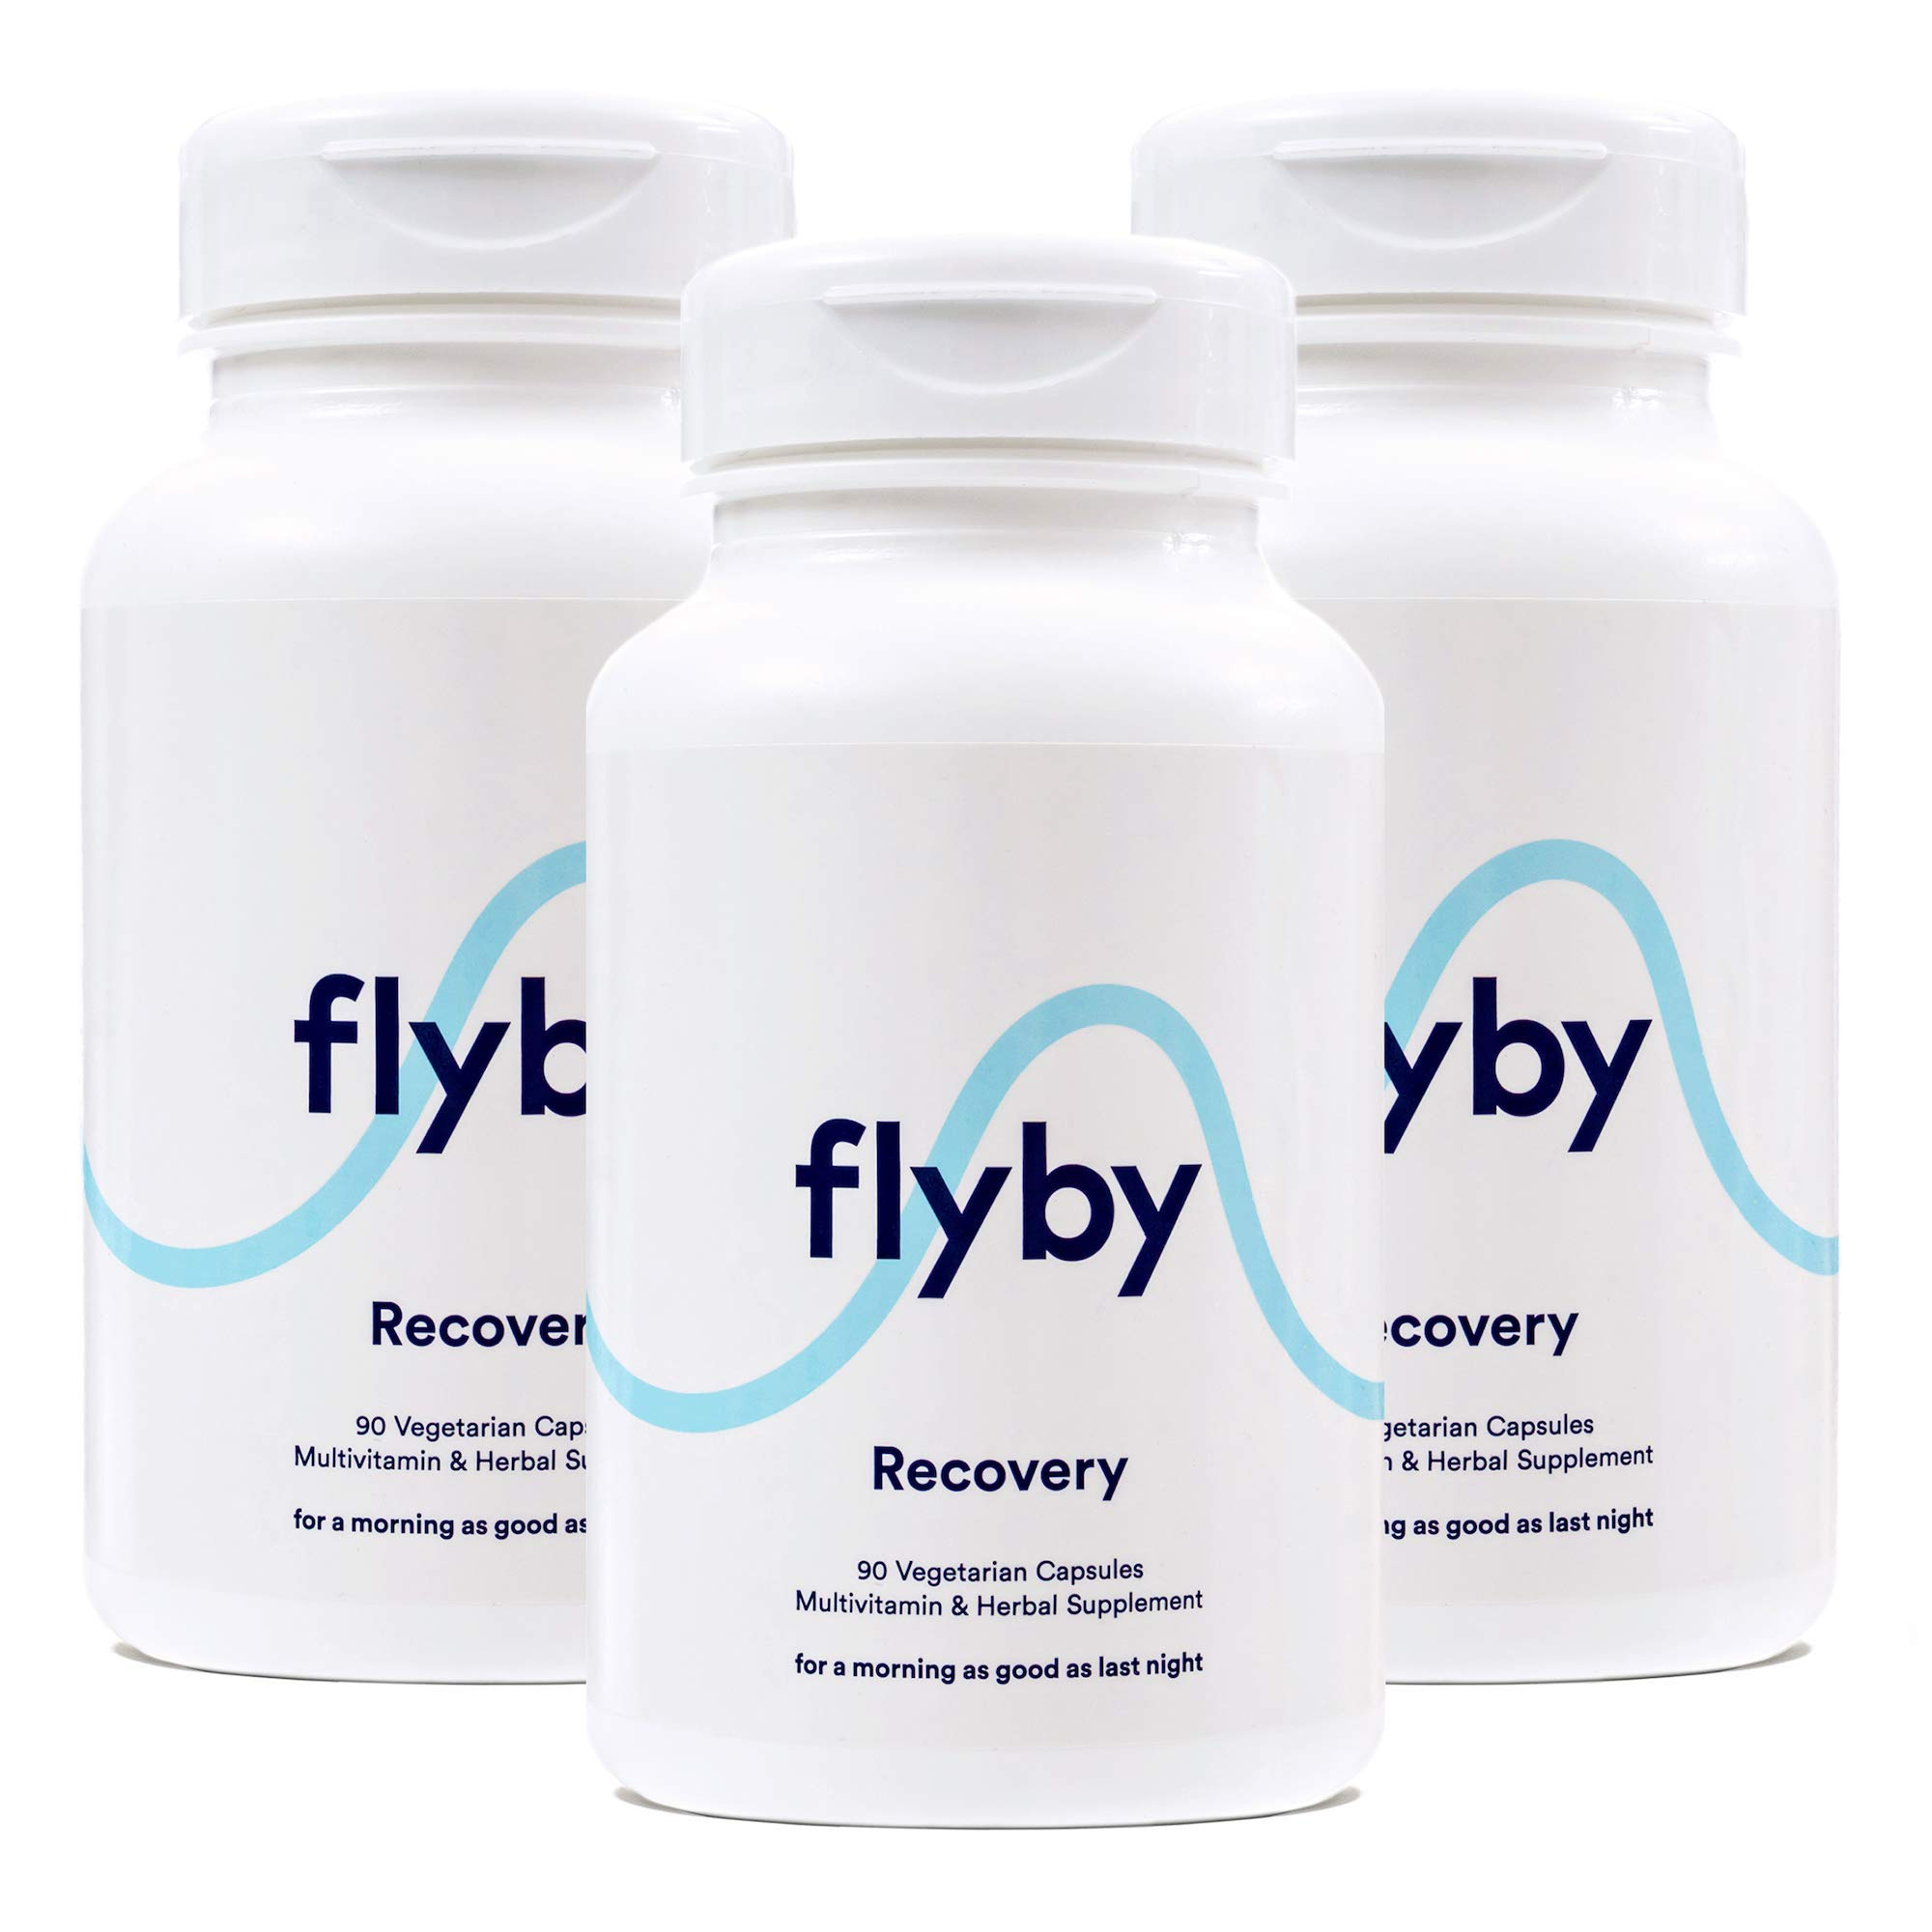 Flyby Hangover Cure & Prevention Pills (270 Capsules) | Dihydromyricetin (DHM), N-Acetyl-Cysteine, Chlorophyll, Prickly Pear, Milk Thistle for Alcohol Recovery | Certified Organic & Made in USA